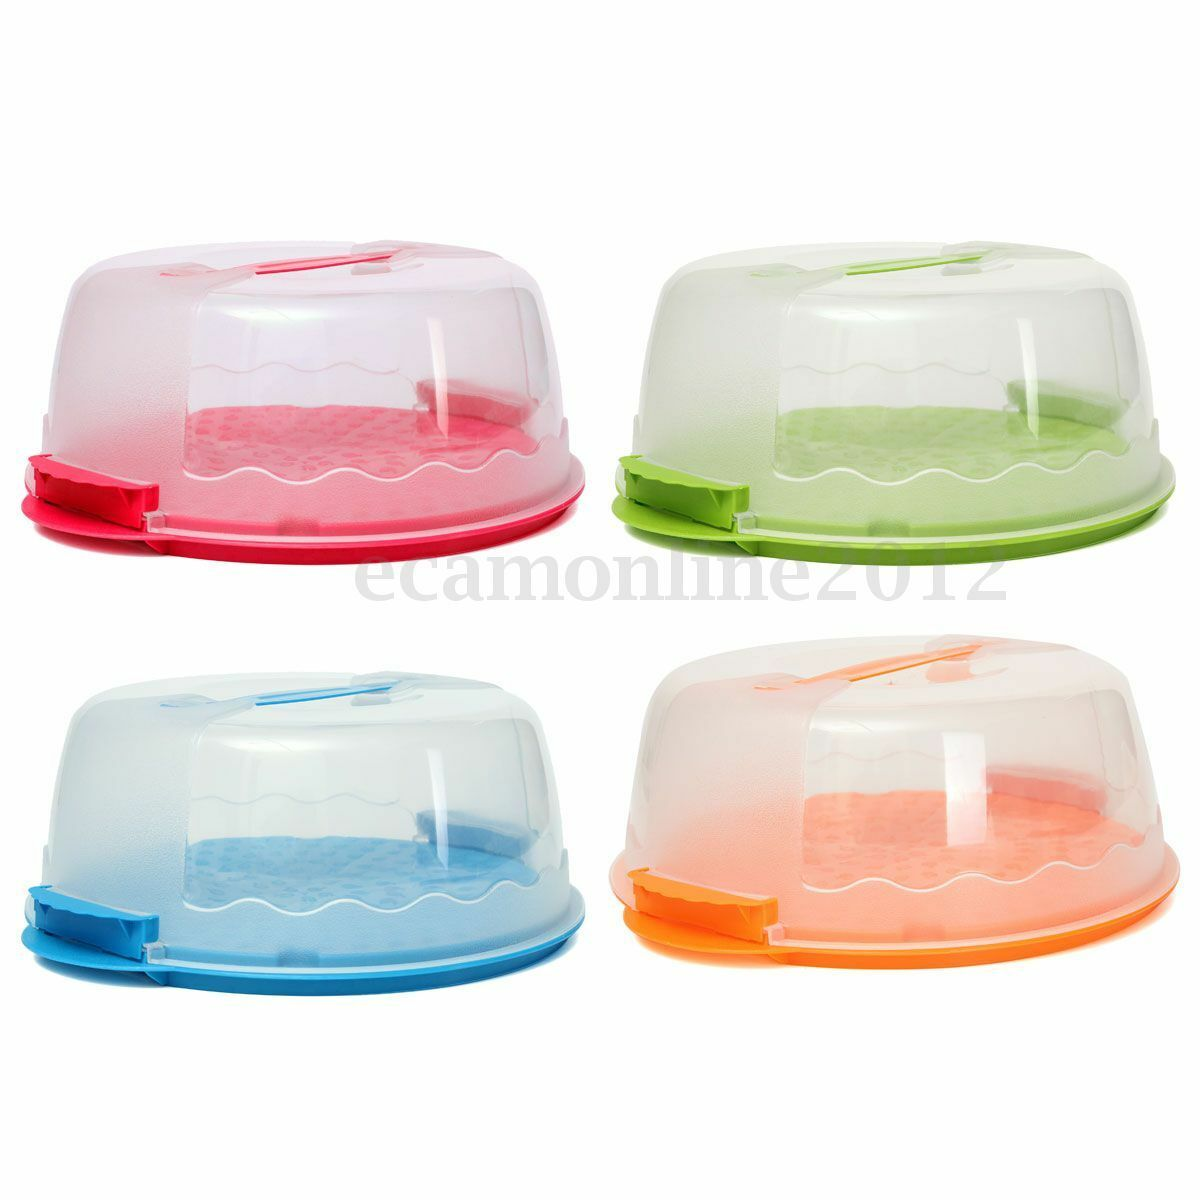 Progressive Collapsible Cupcake And Cake Carrier Canada